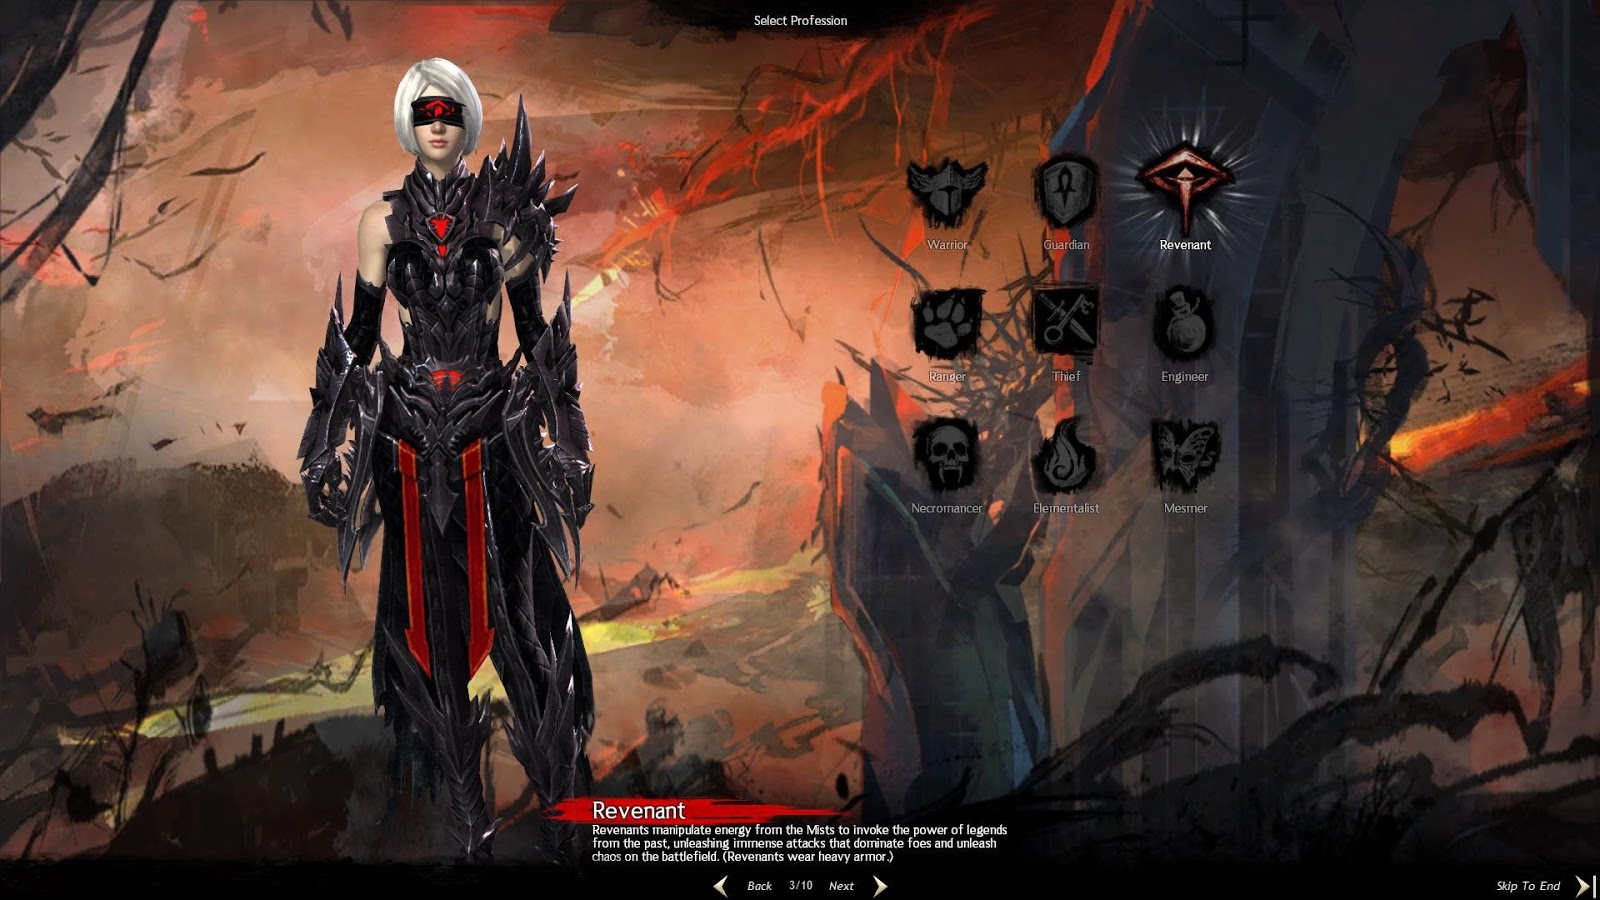 Inventory Full: Here Comes The New Class    : GW2